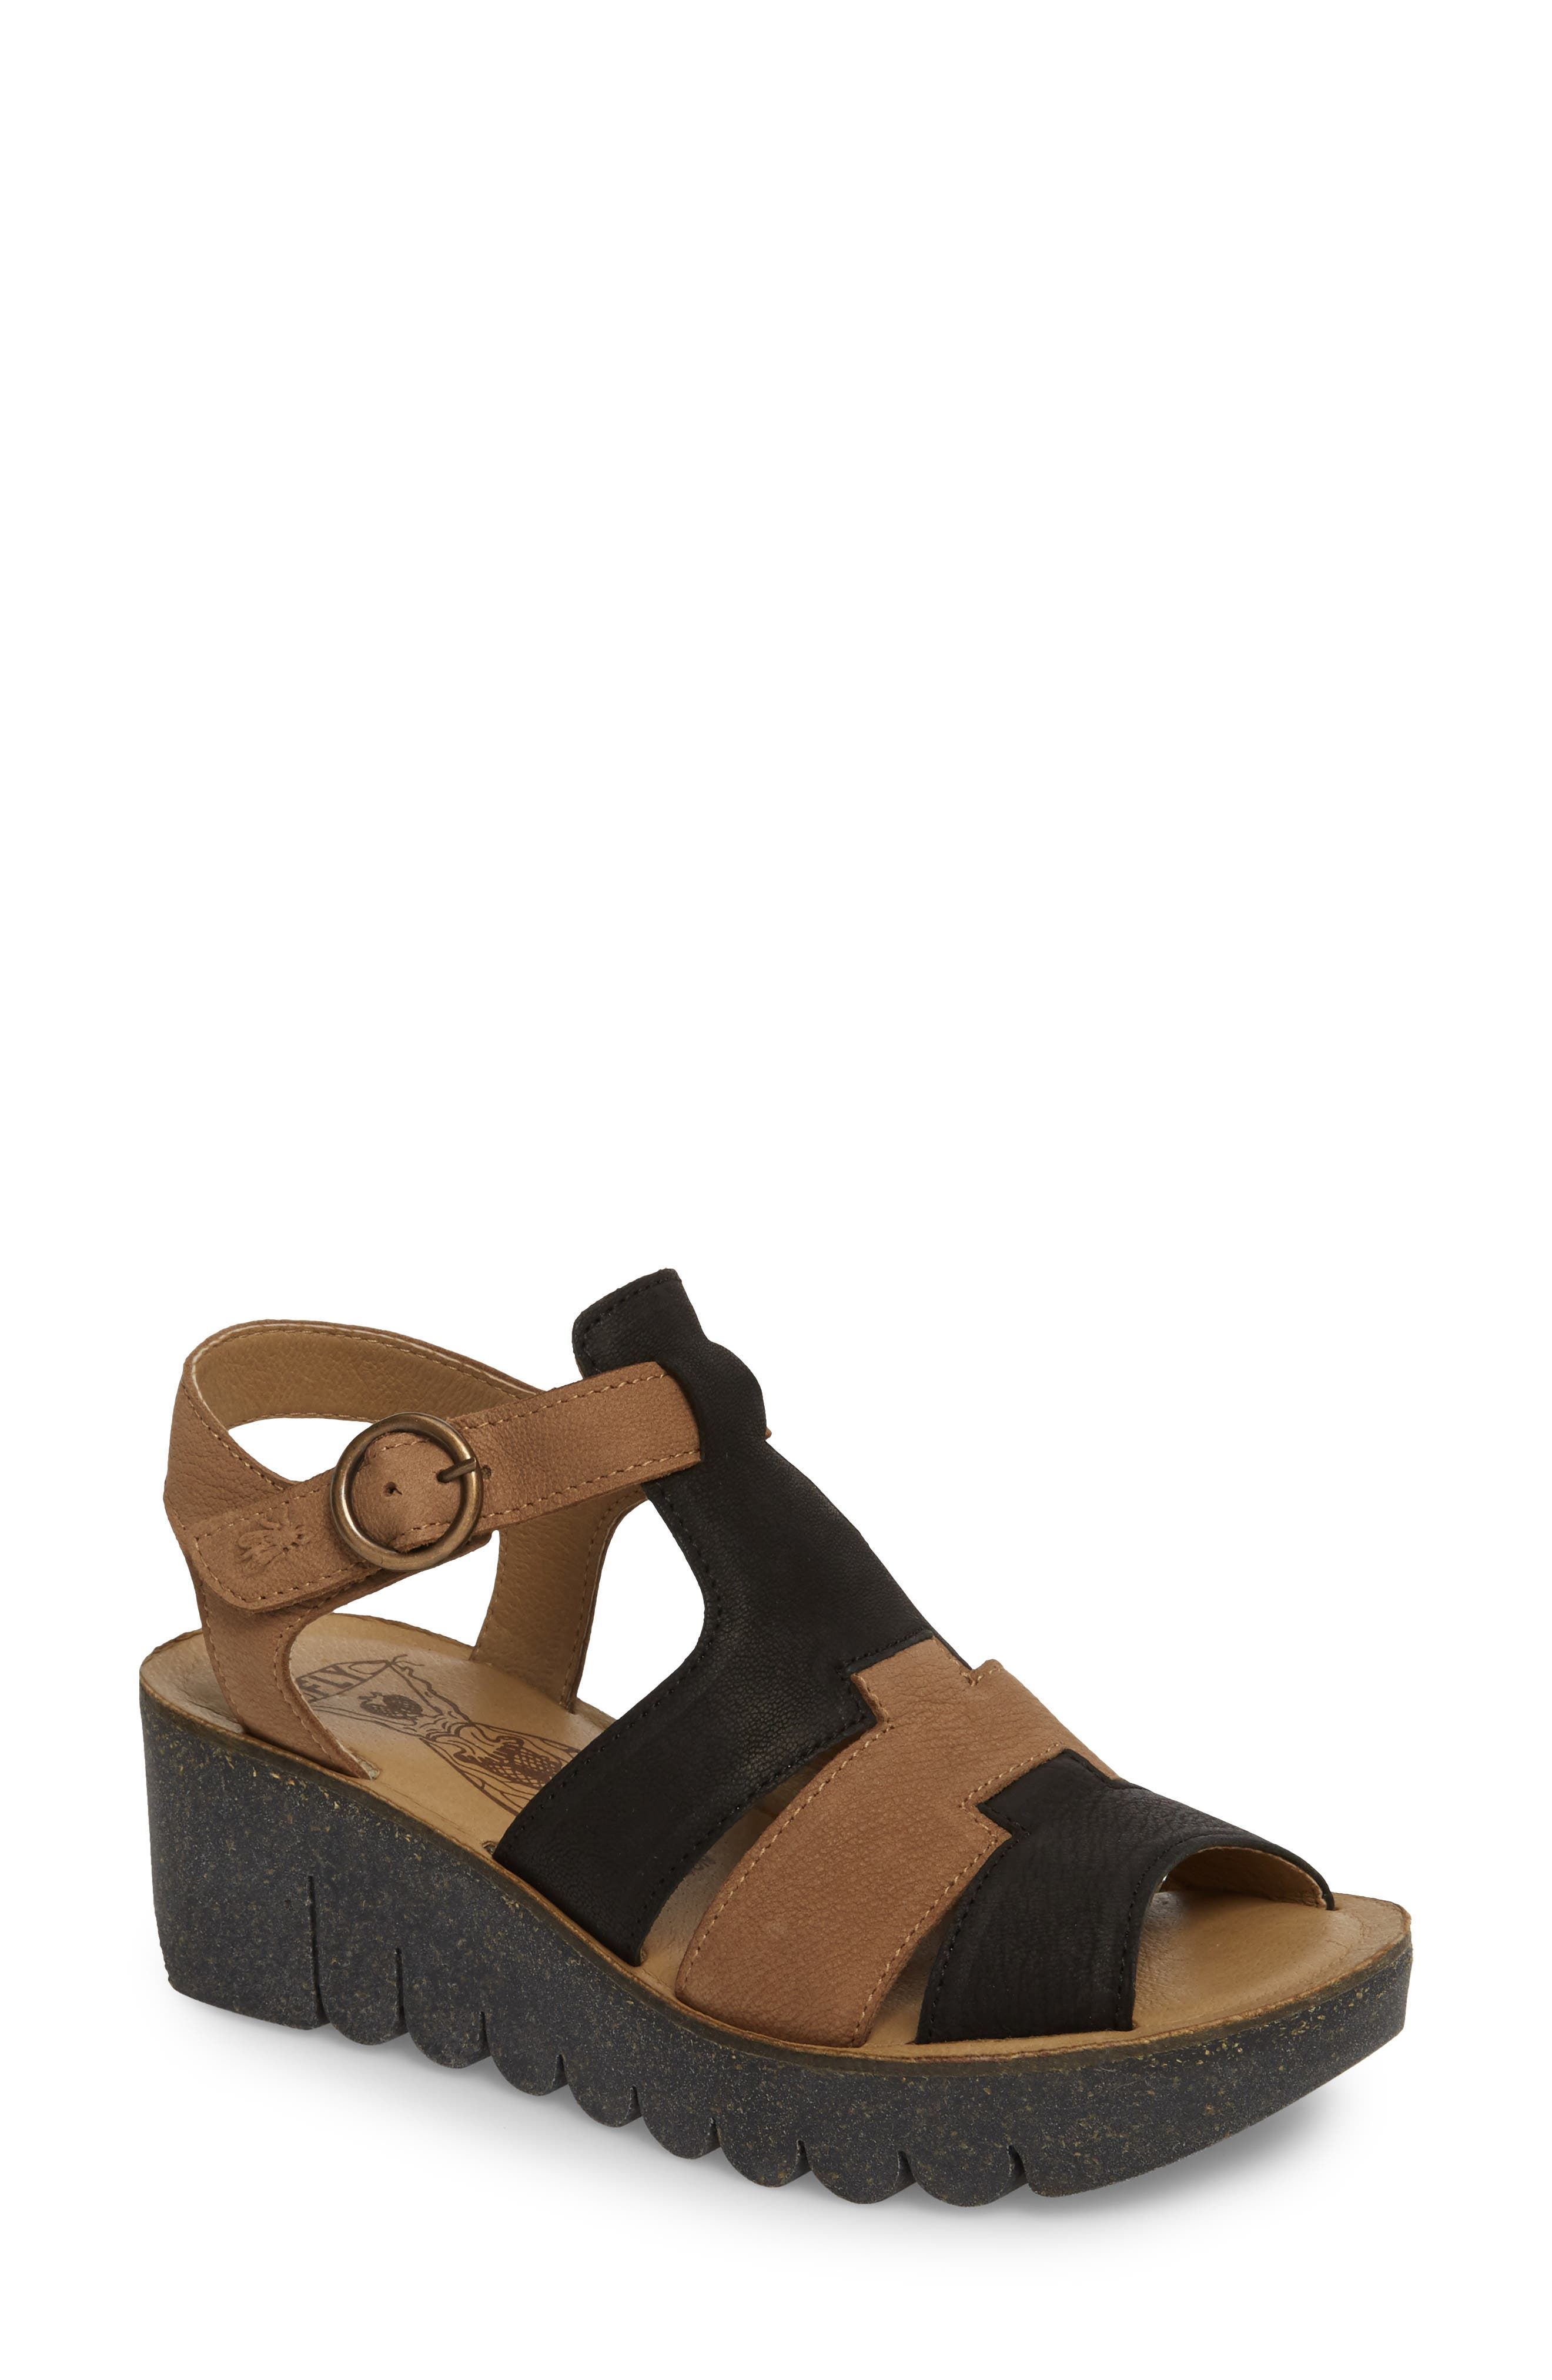 Yuni Wedge Sandal,                         Main,                         color, Black/ Sand Cupido Leather